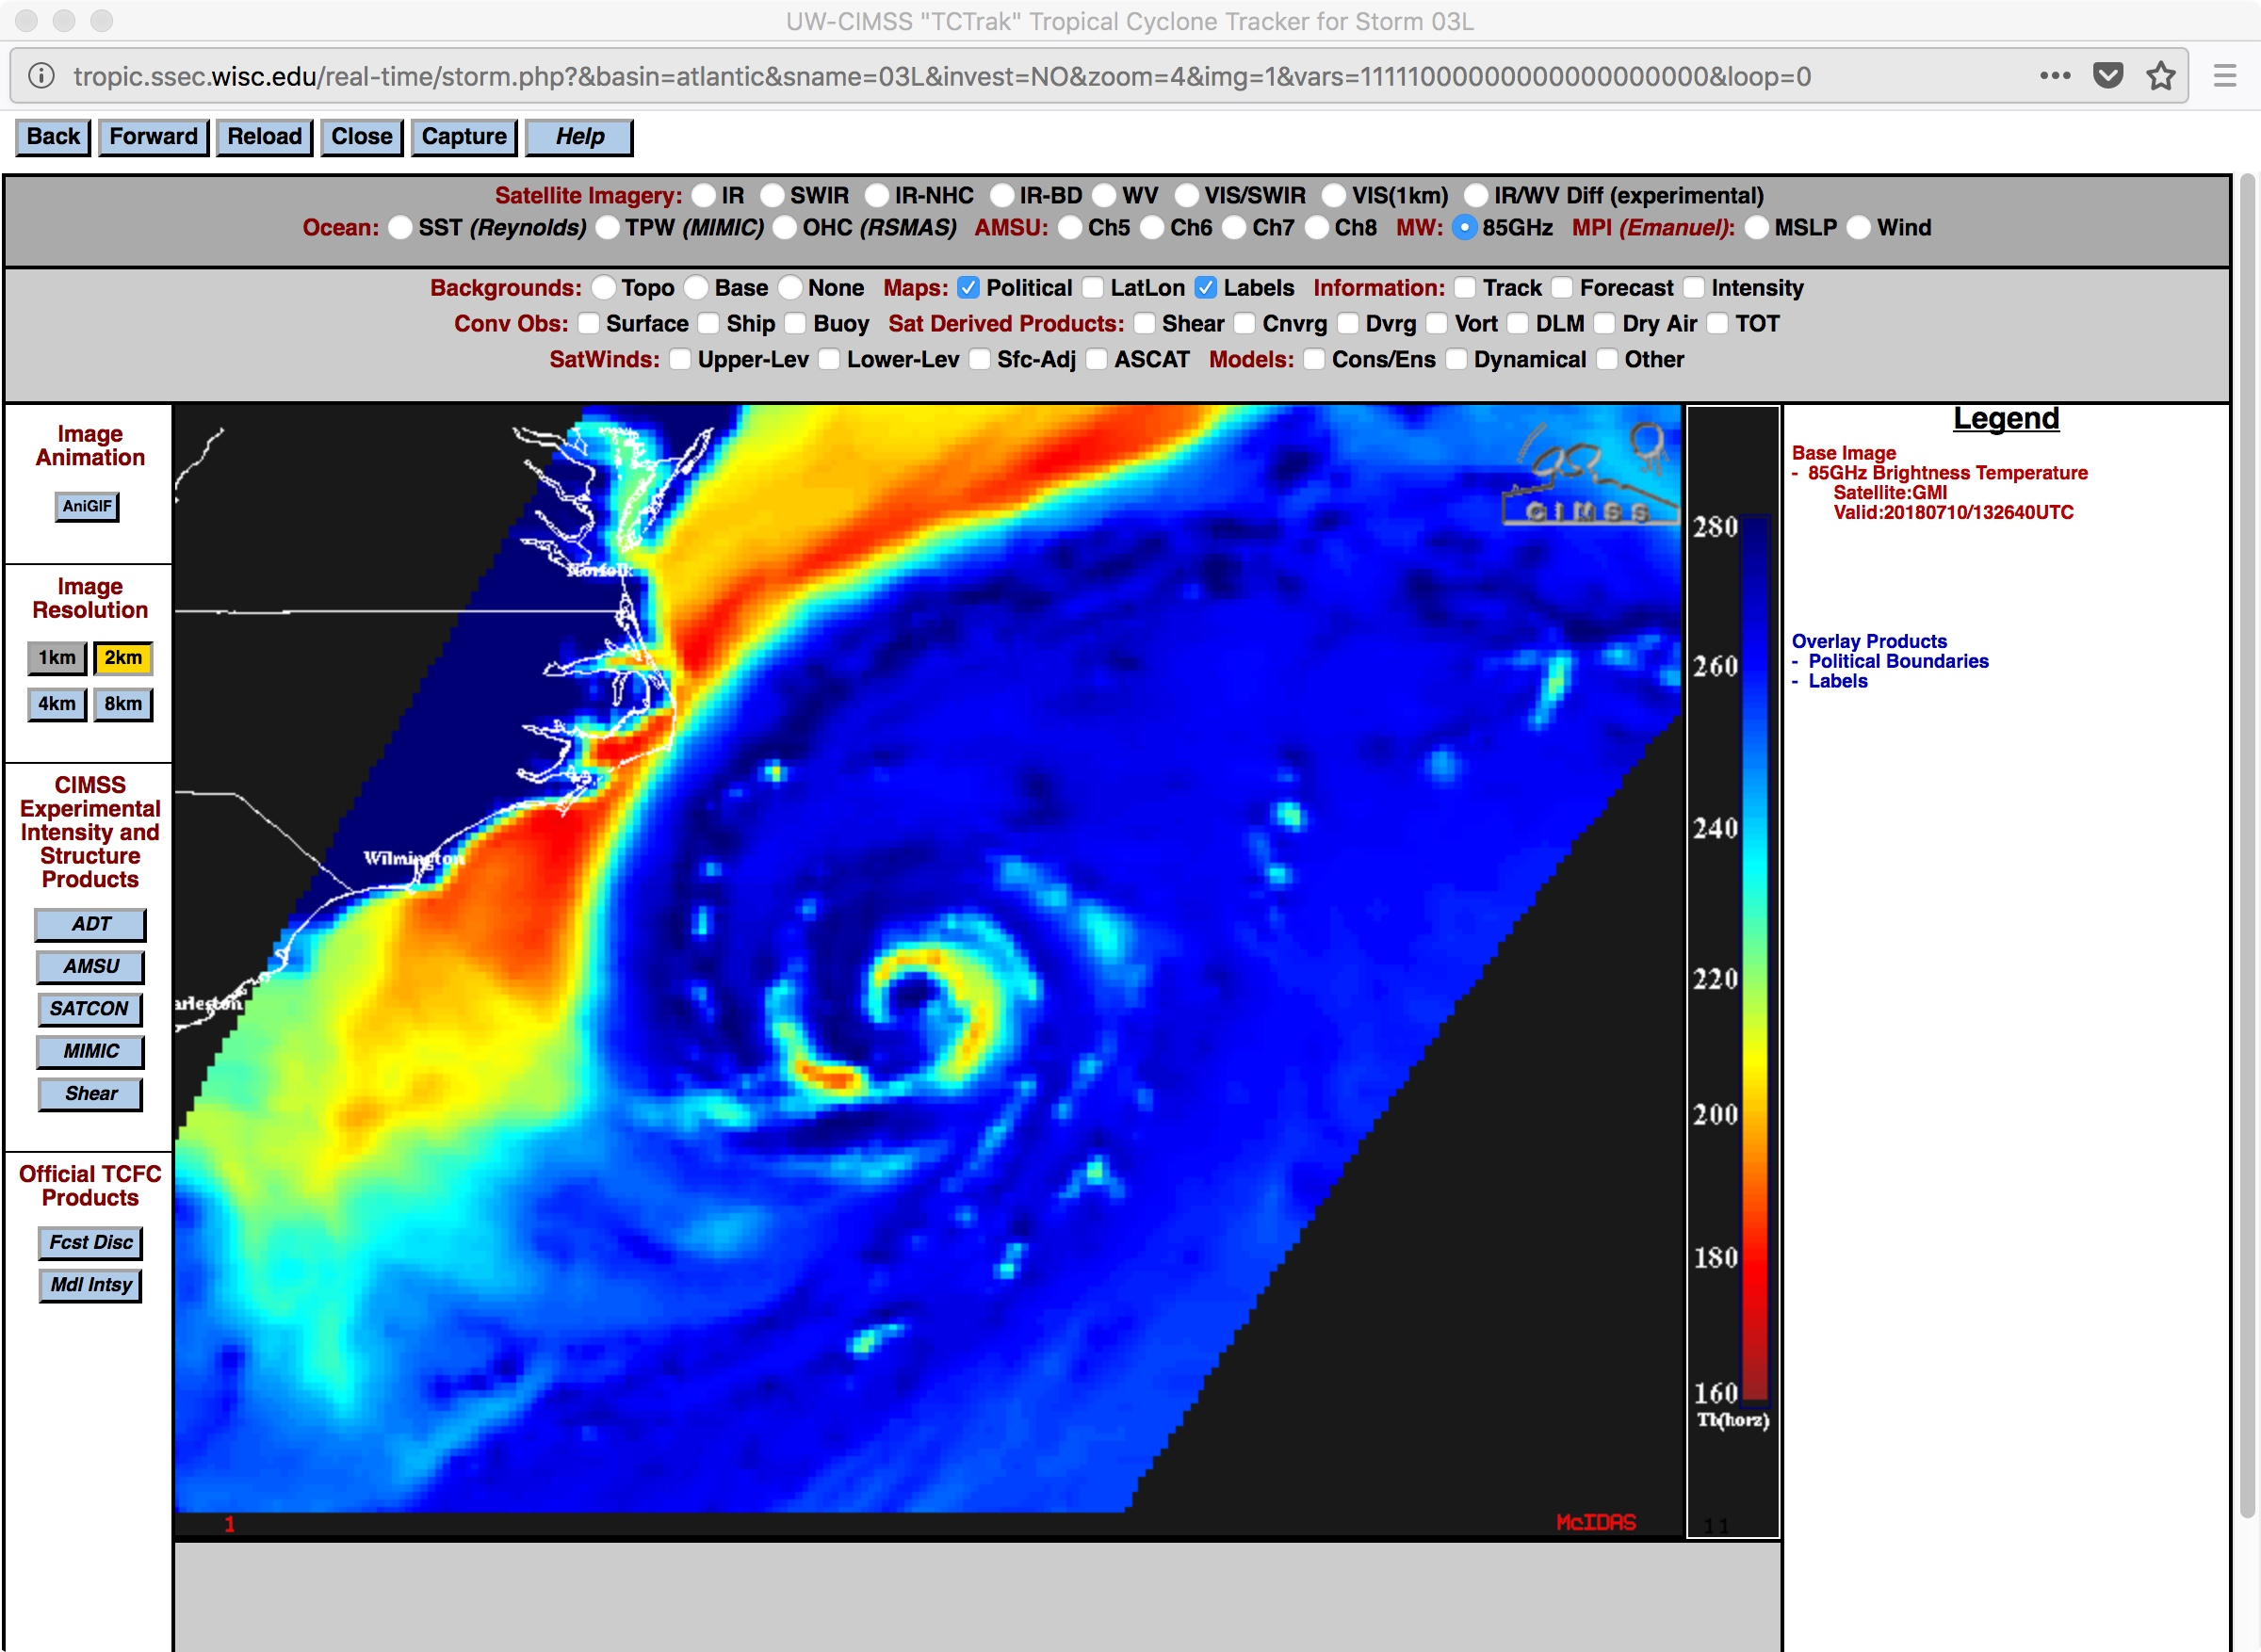 GPM GMI Microwave (85 GHz) image [click to enlarge]